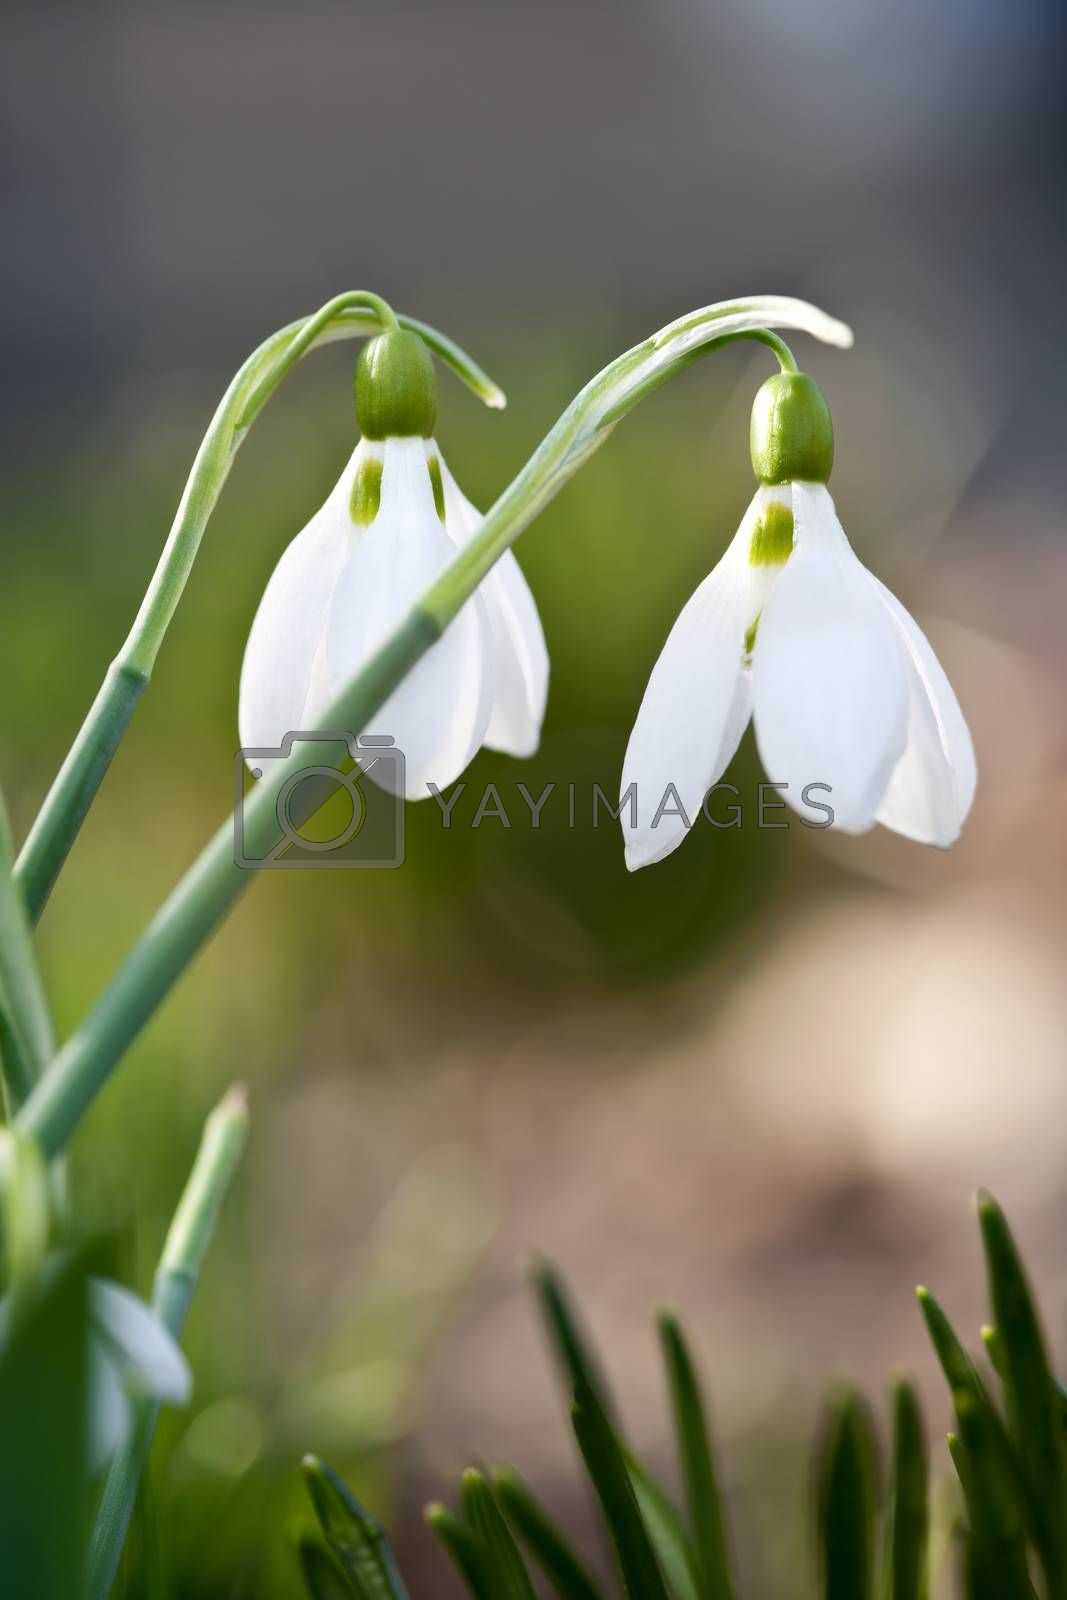 Closeup of white spring snowdrops with delicate green stems